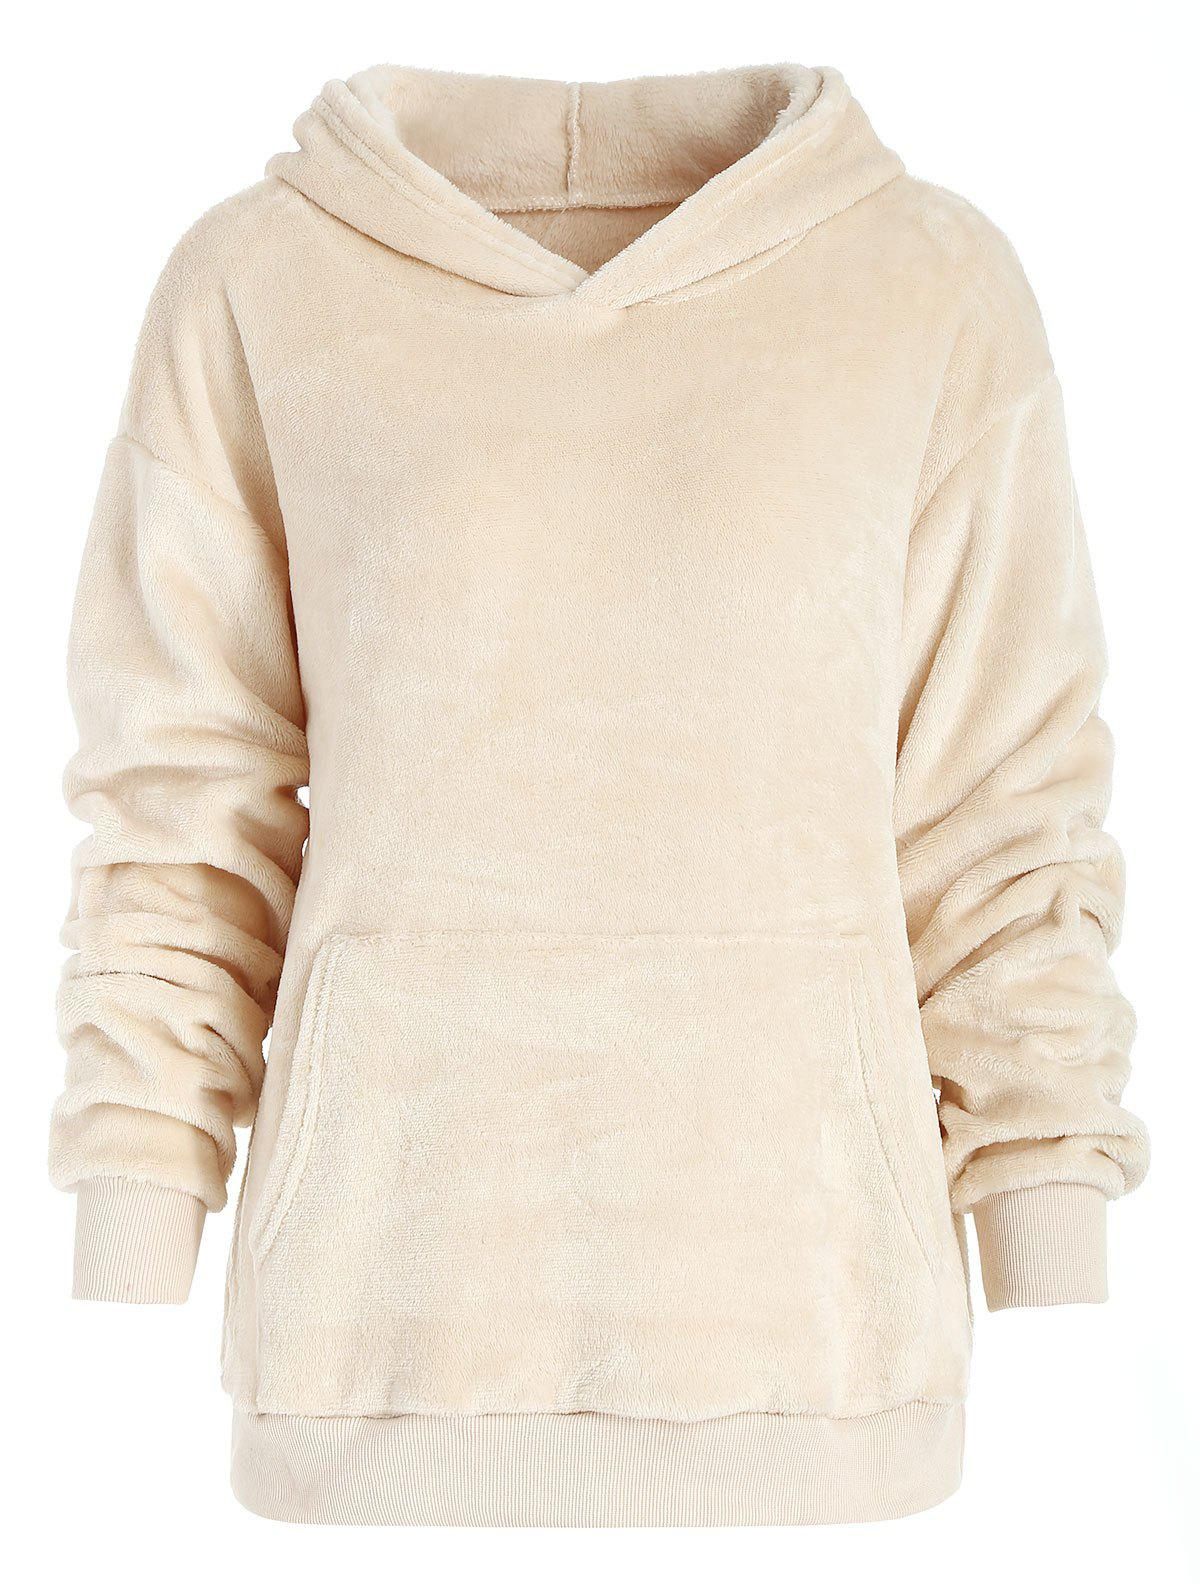 Kangaroo Pocket - Sweat à capuche en fausse fourrure - Blanc Chaud M